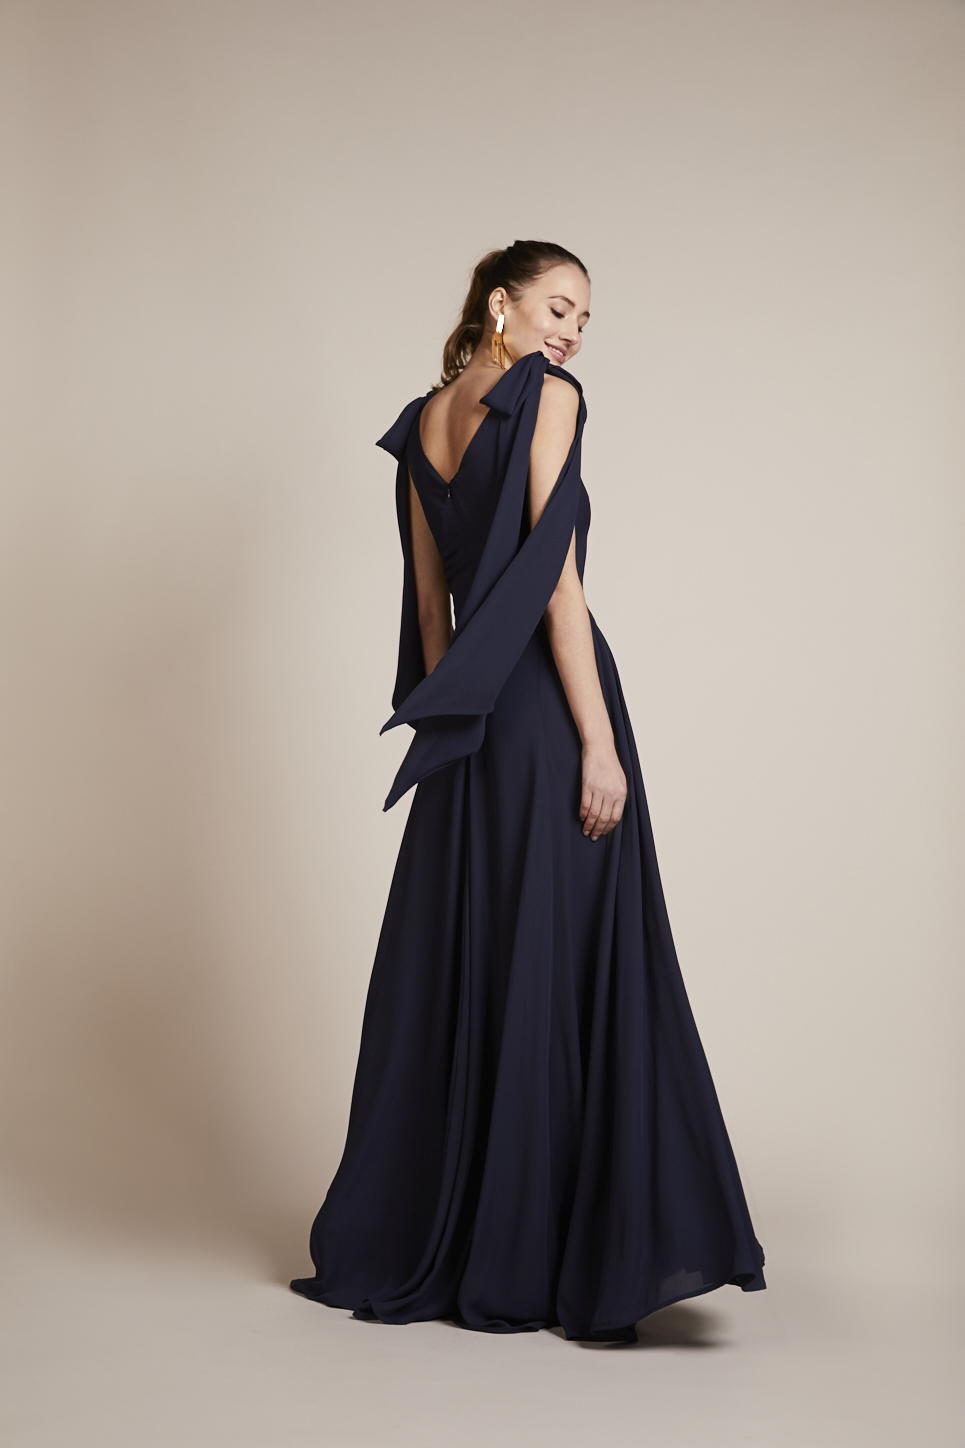 Rewritten Bridesmaids dresses - 2018 Seville dress